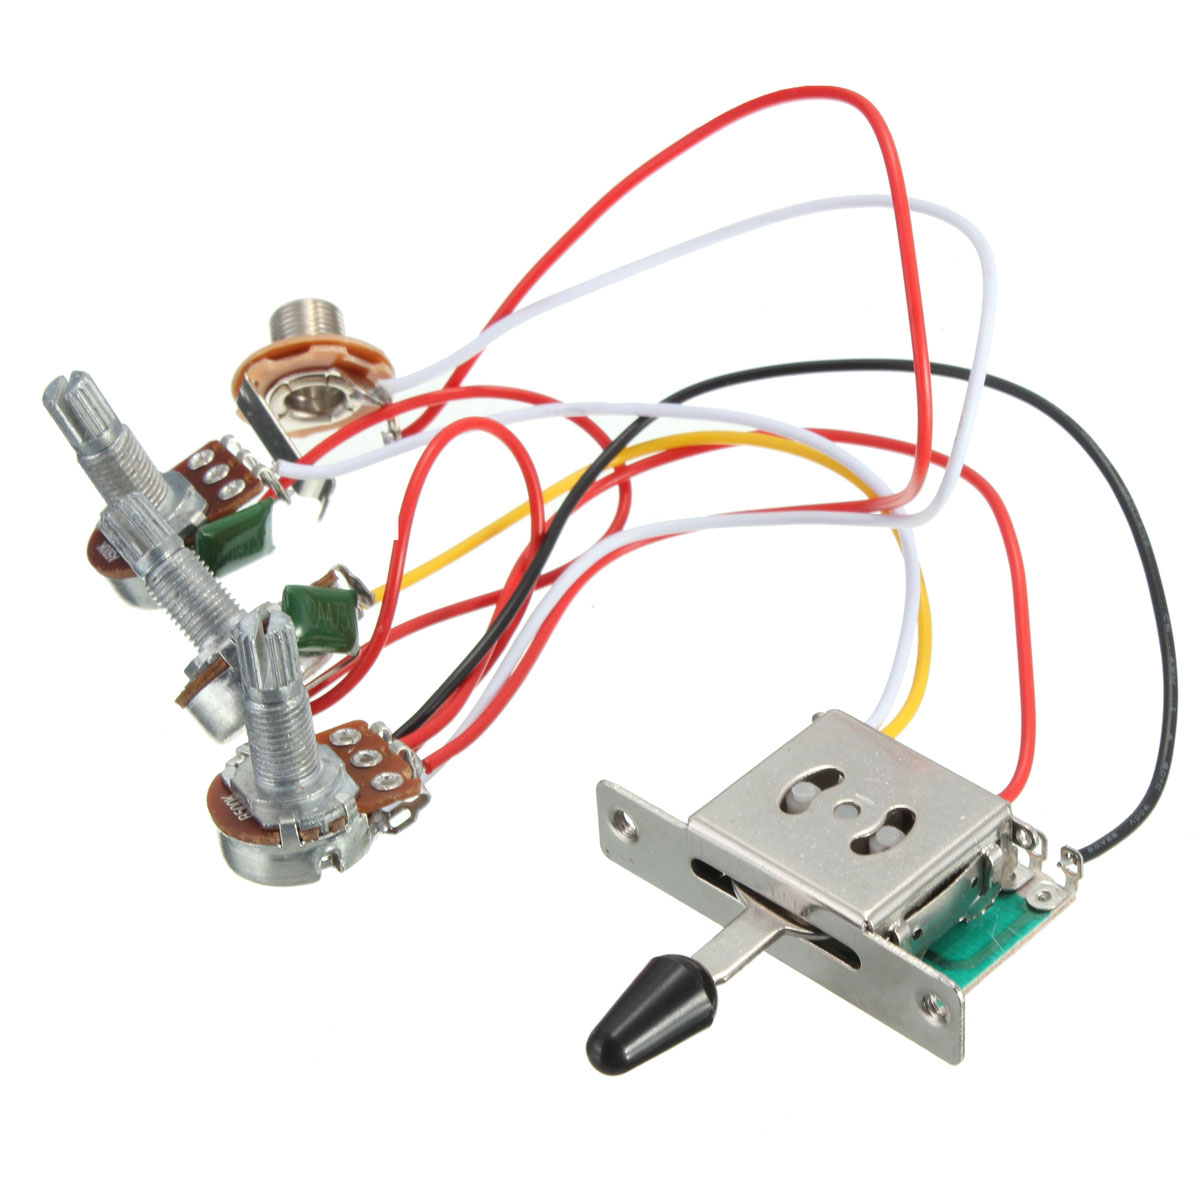 Nice Wiring Diagram For 150cc Scooter Tall Bulldog Security Com Flat Bulldog Security Remote Starter With Keyless Entry Guitar Pickup Installation Young Ibanez Hsh RedWiring Dimarzio Pickups Aliexpress.com : Buy 5 Way Switch 500k Pots Knobs Wiring Harness ..